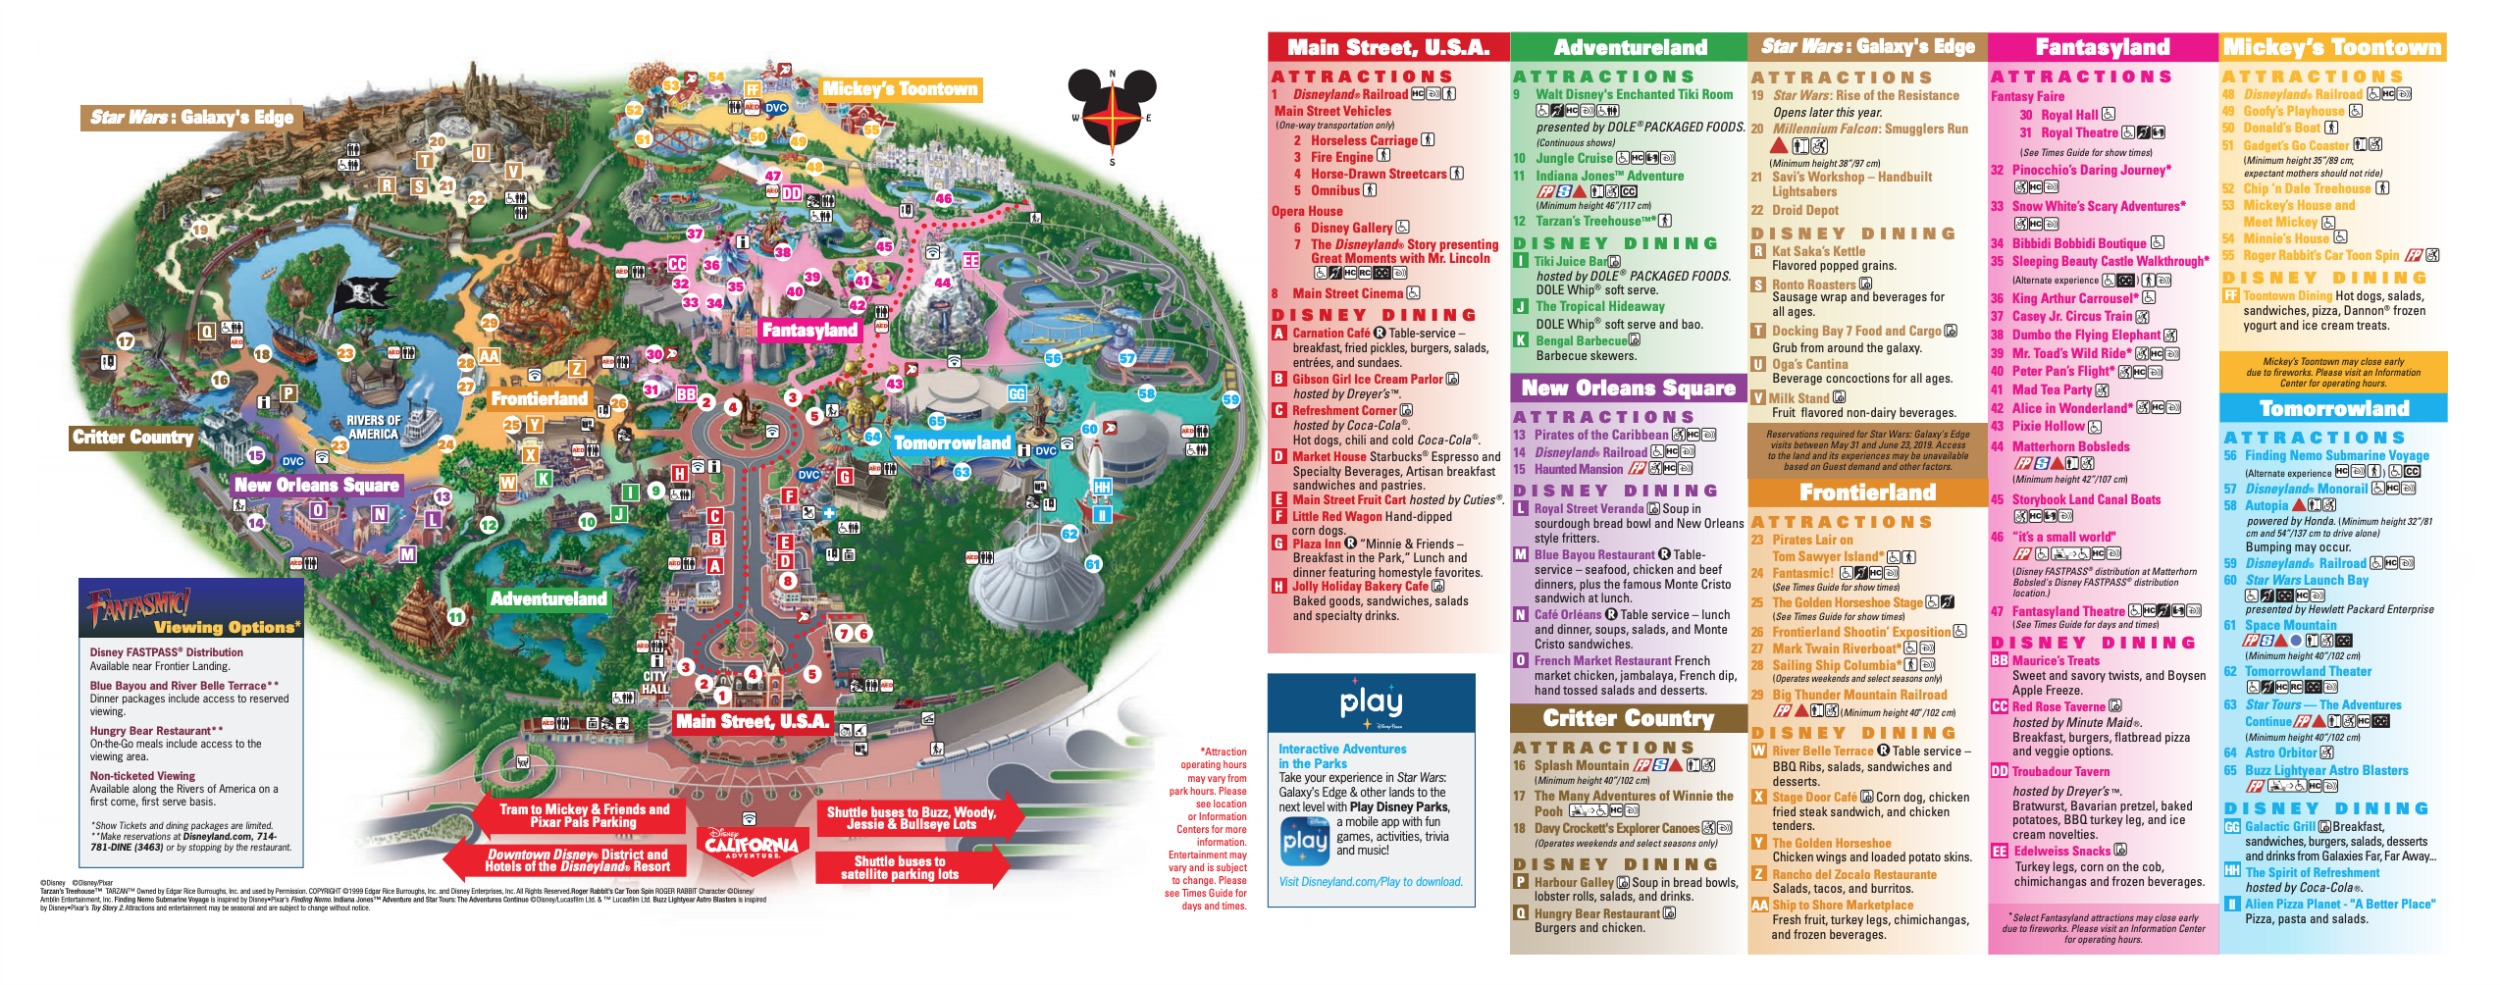 This is a picture of Bright Printable Disneyland Maps